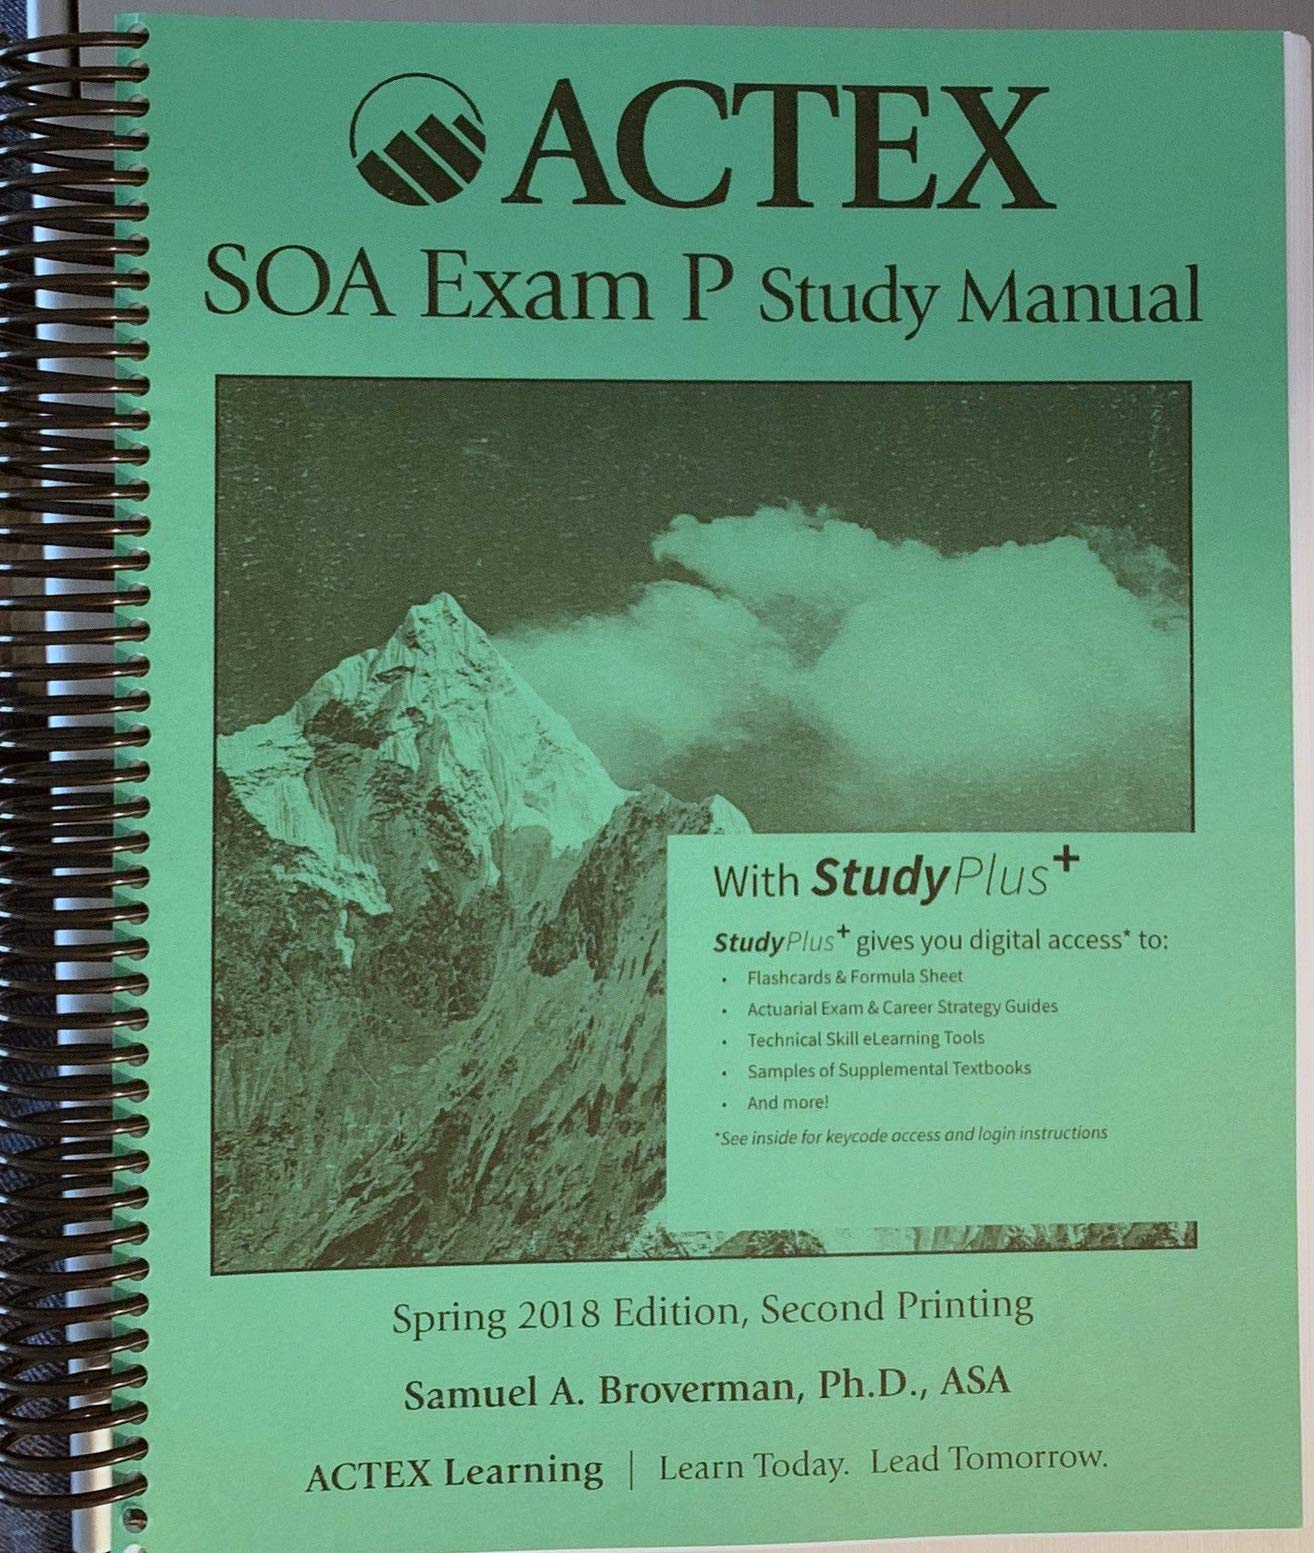 Actex Study Manual:SOA Exam P, CAS Exam 1 - Spring 2018, 2nd Printing:  Samuel A. Broverman: 9781635884470: Amazon.com: Books